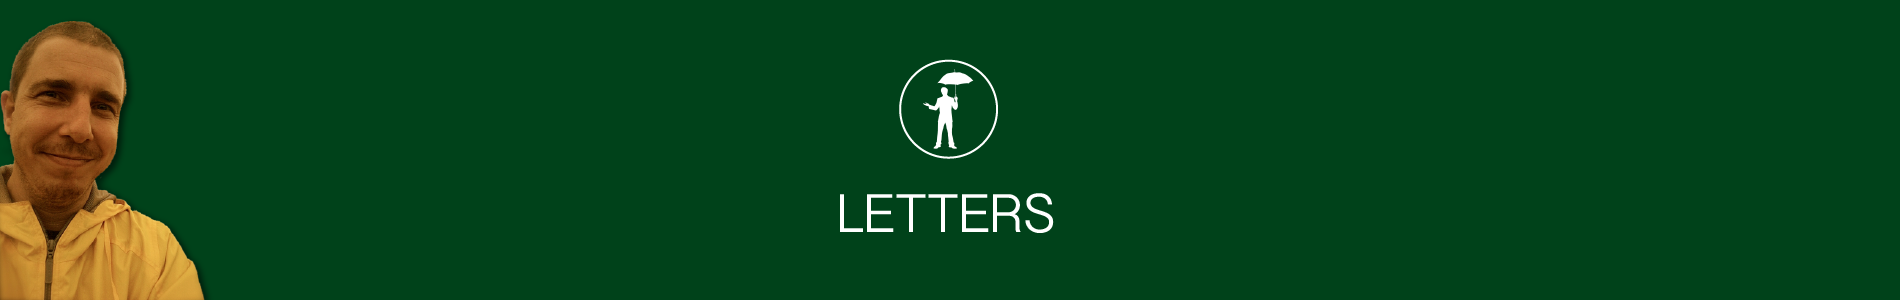 Header image for Letters page